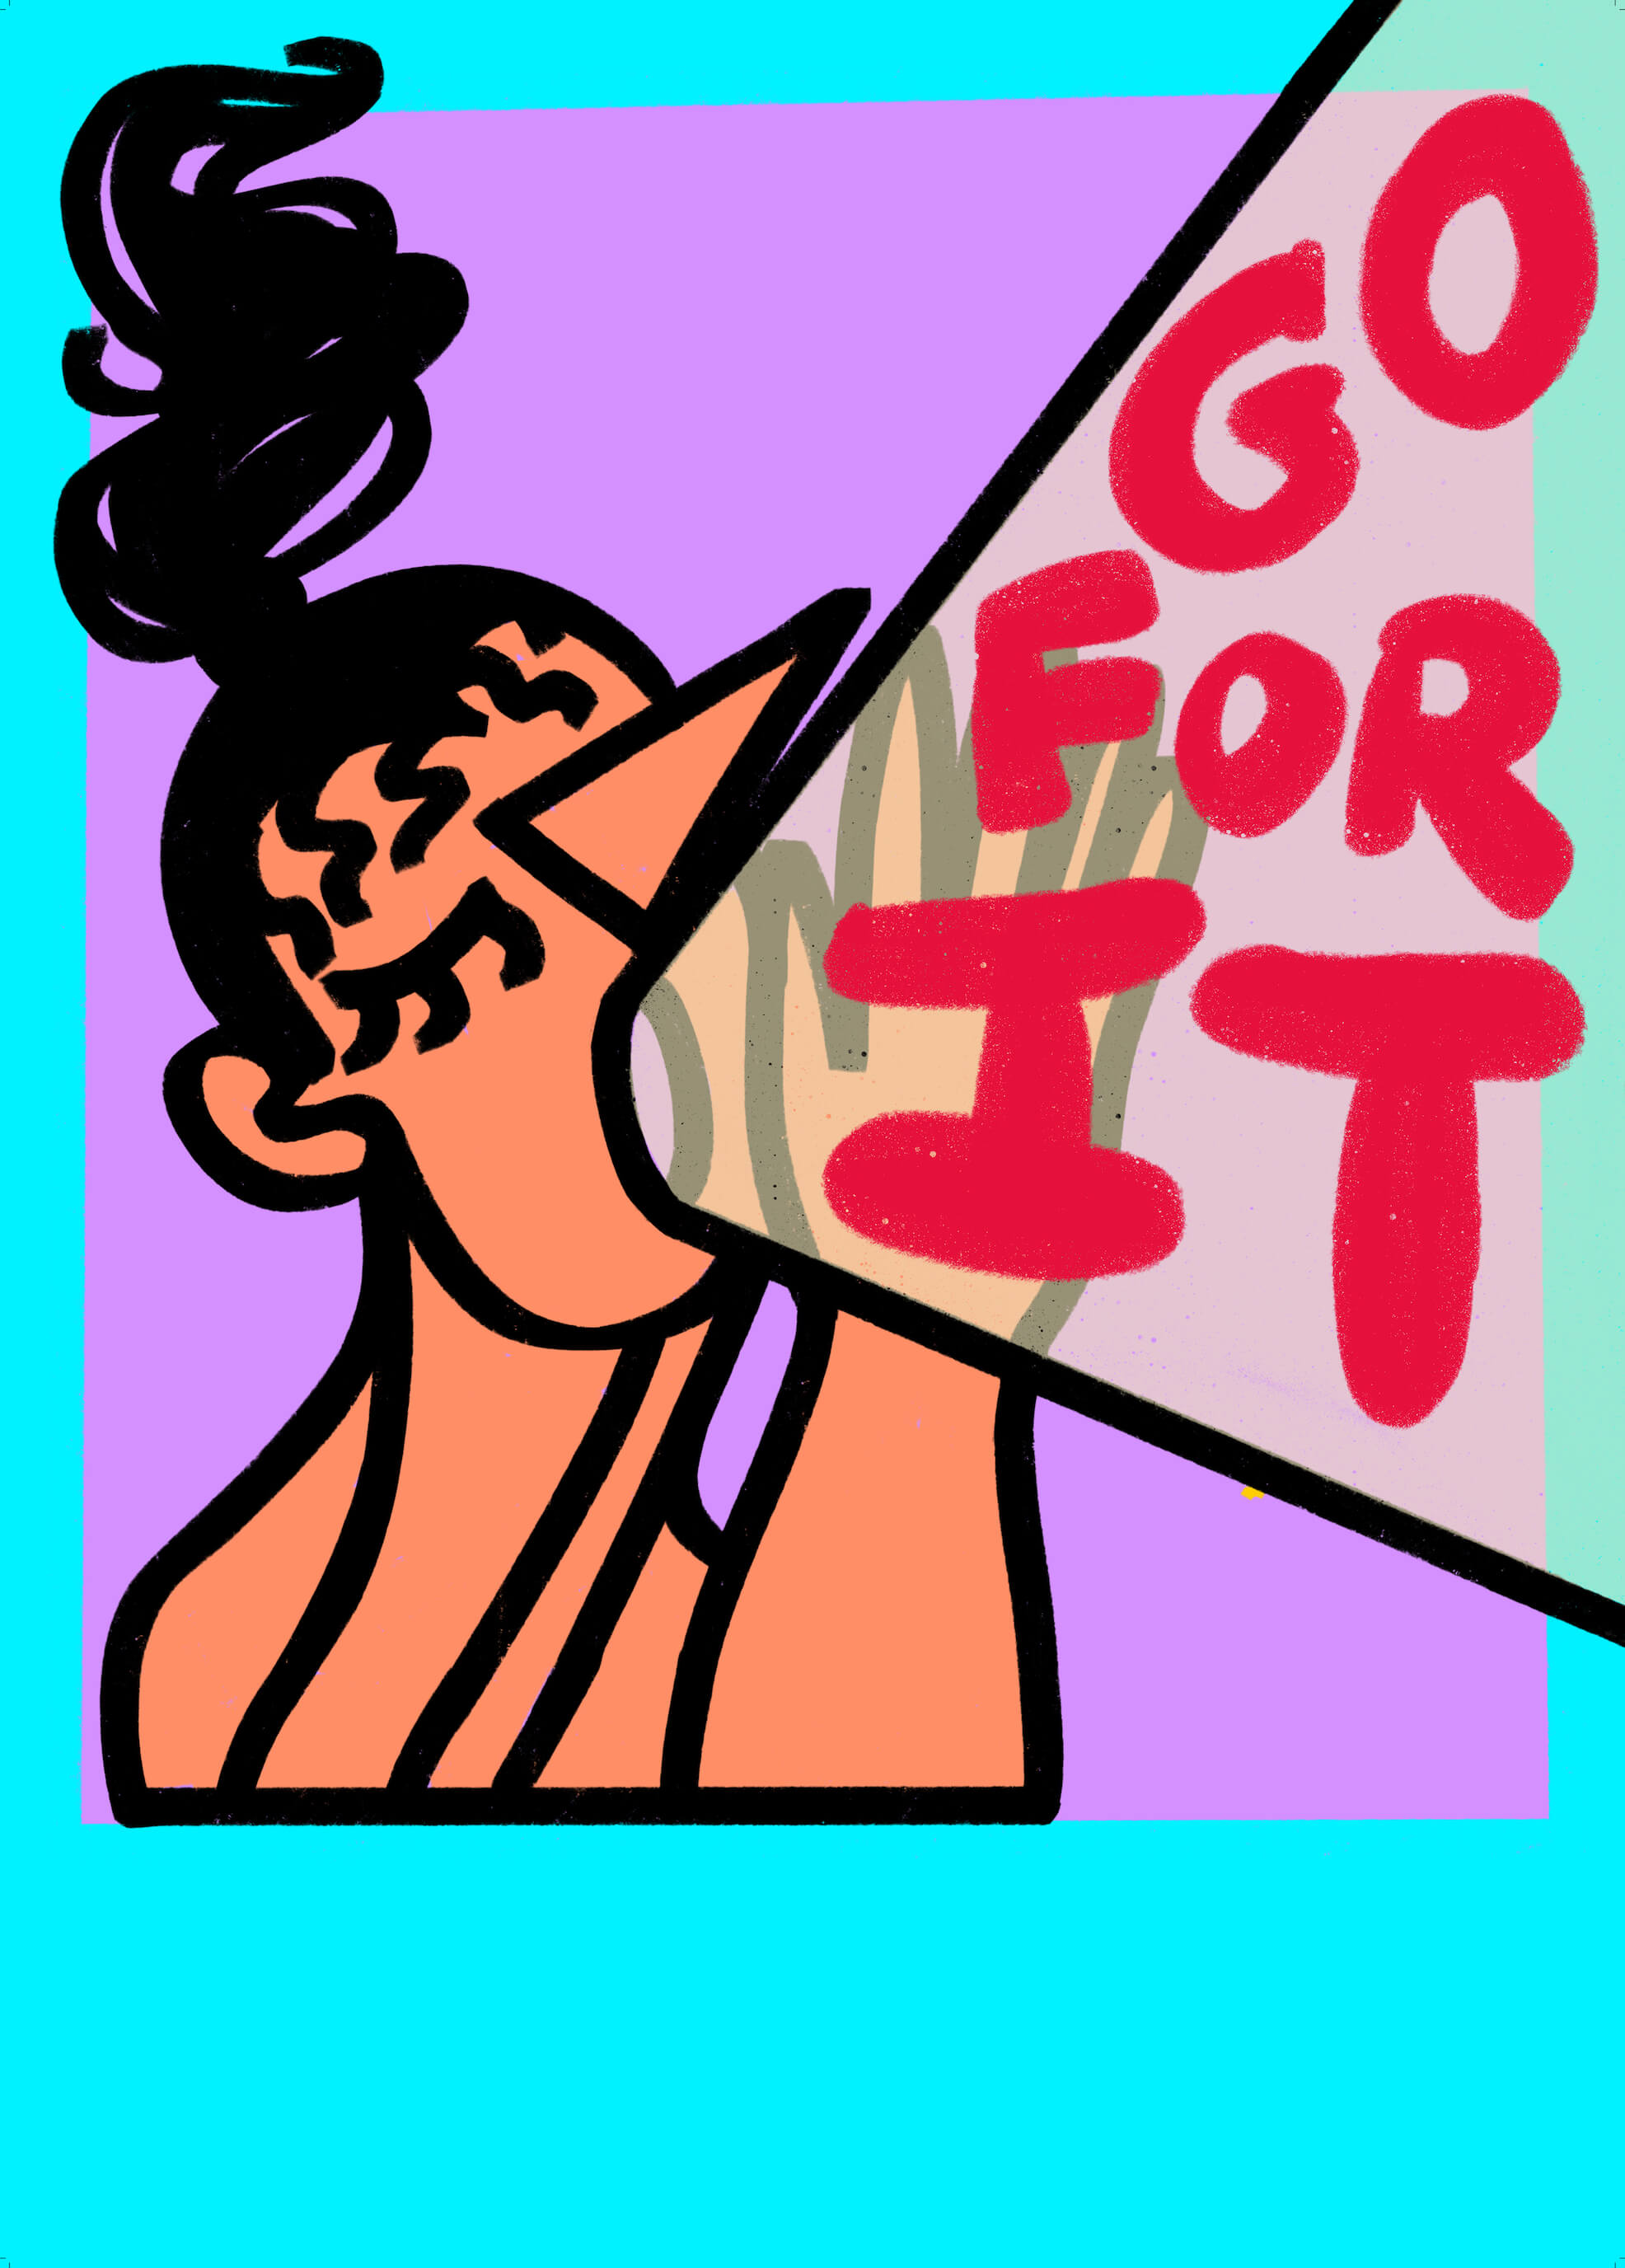 Go For It (color series) main image